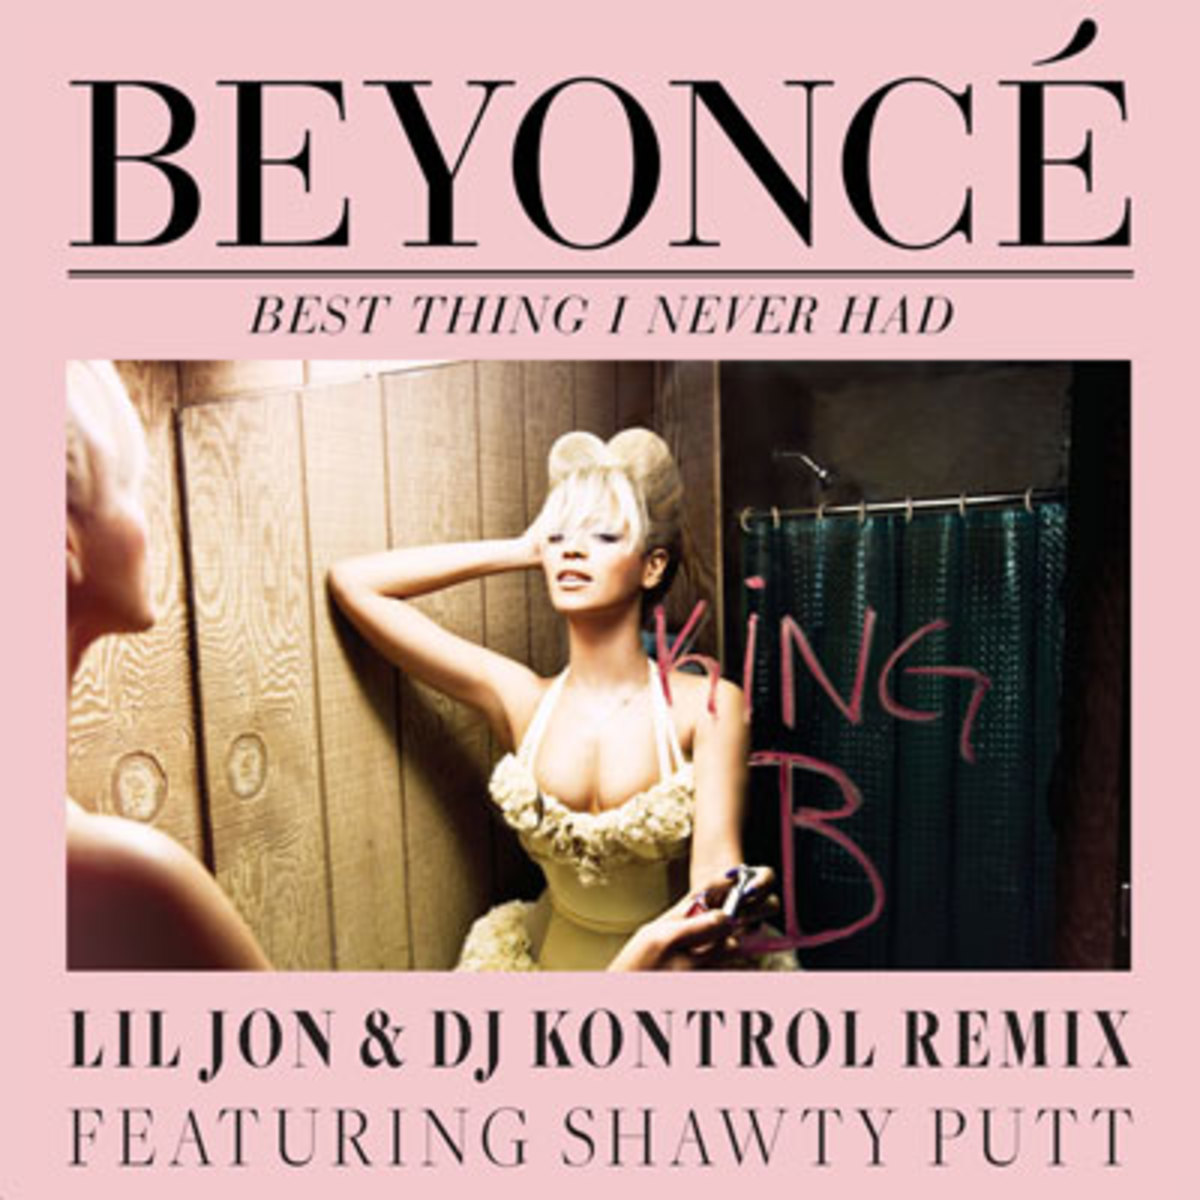 beyonce-bestthingineverhadrmx.jpg